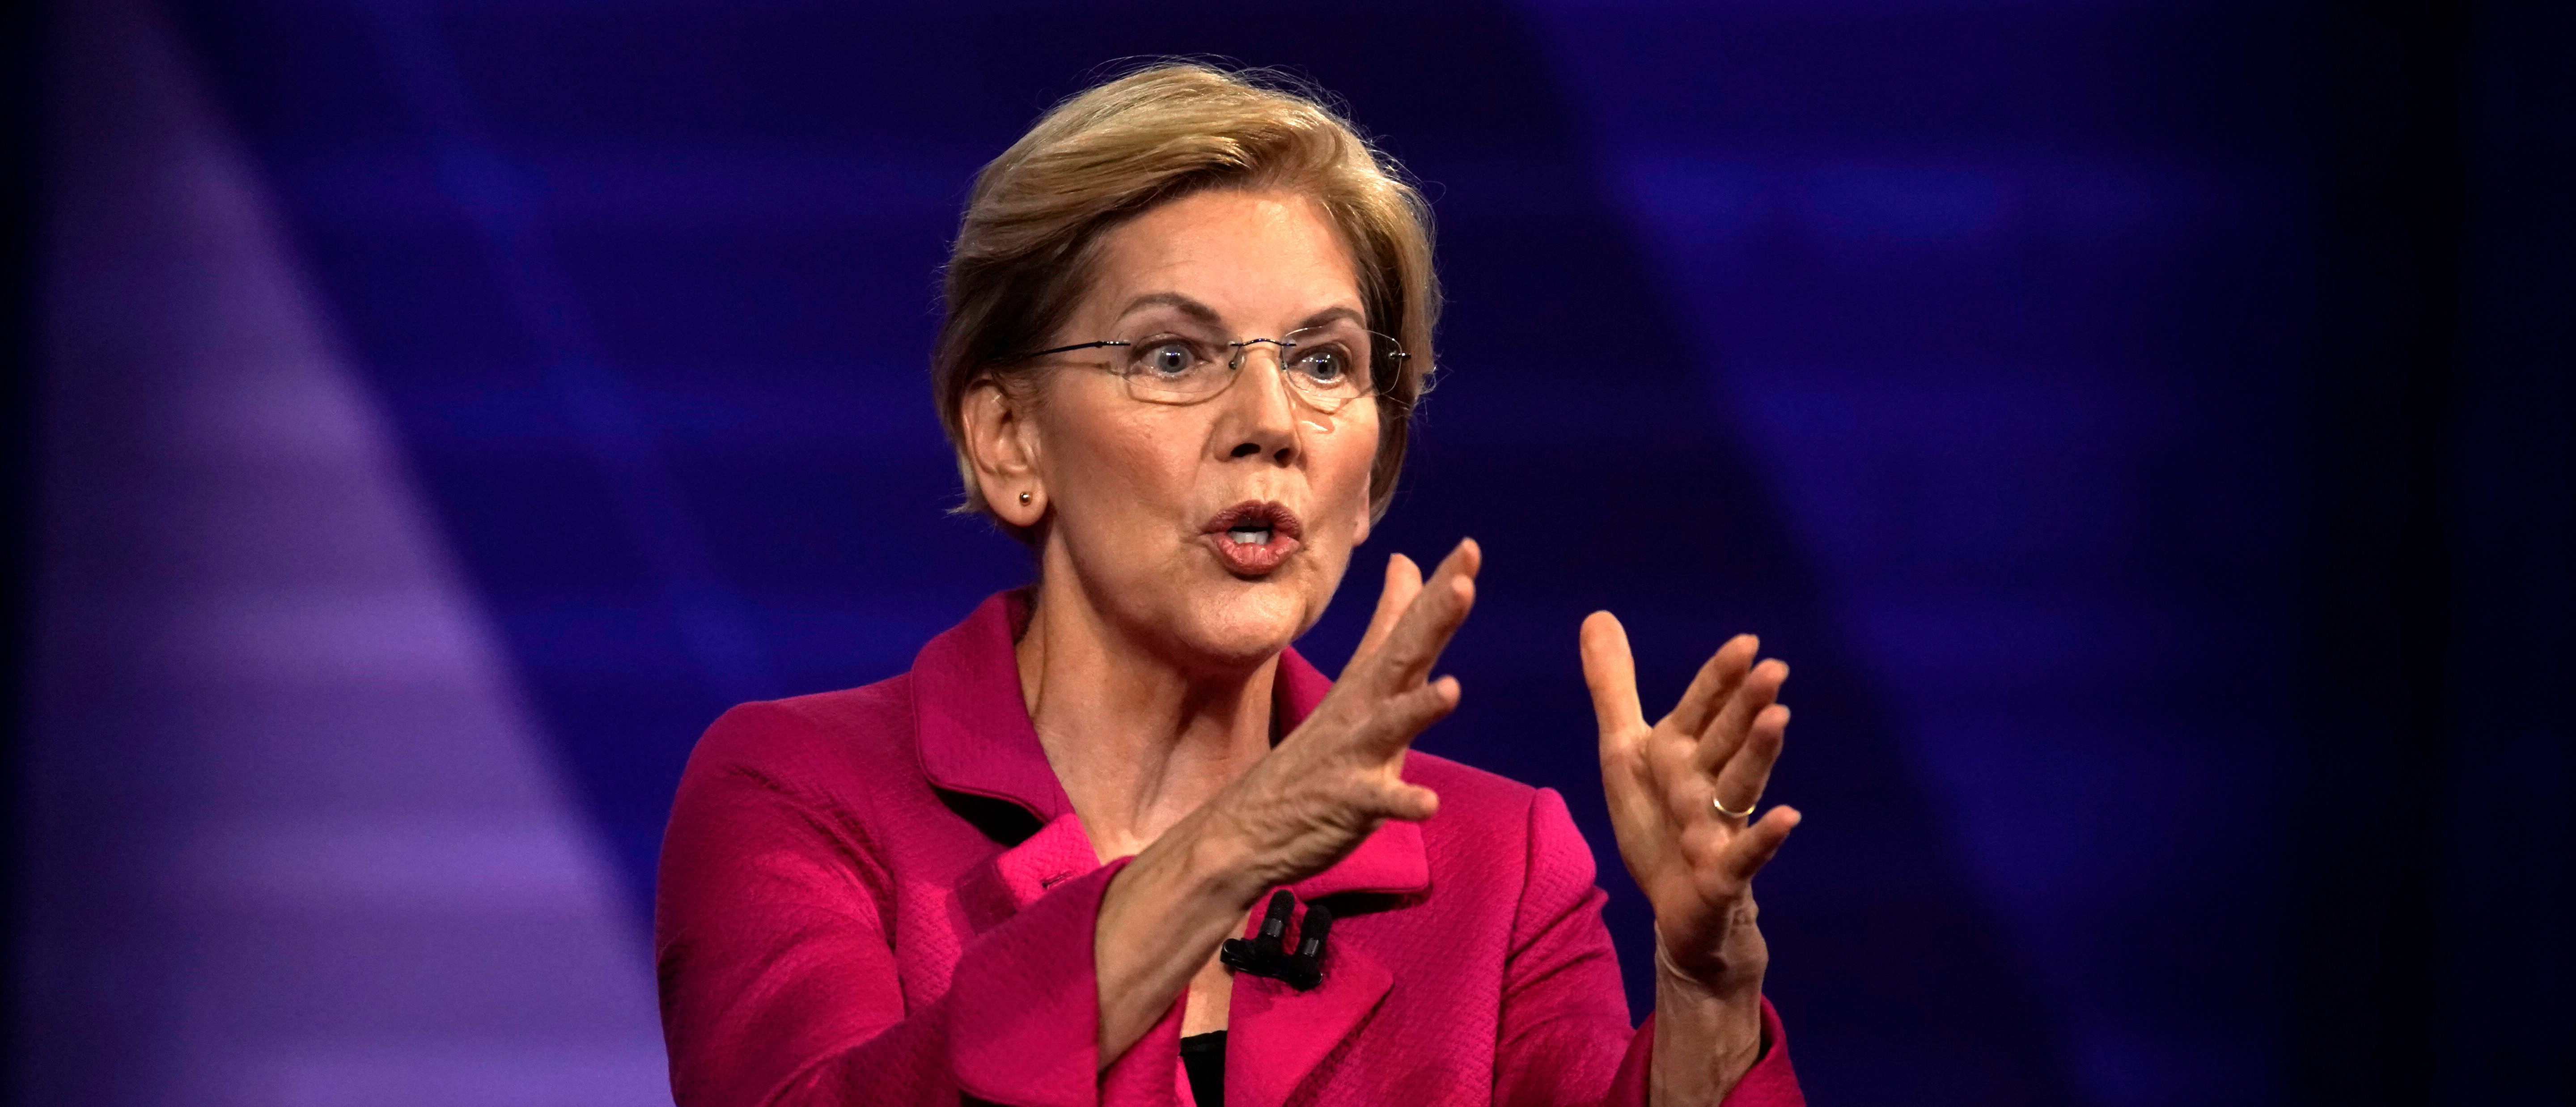 Liz Warren Once Eulogized A Man In Front Of His Children By Accusing Him Of Sexual Harassment